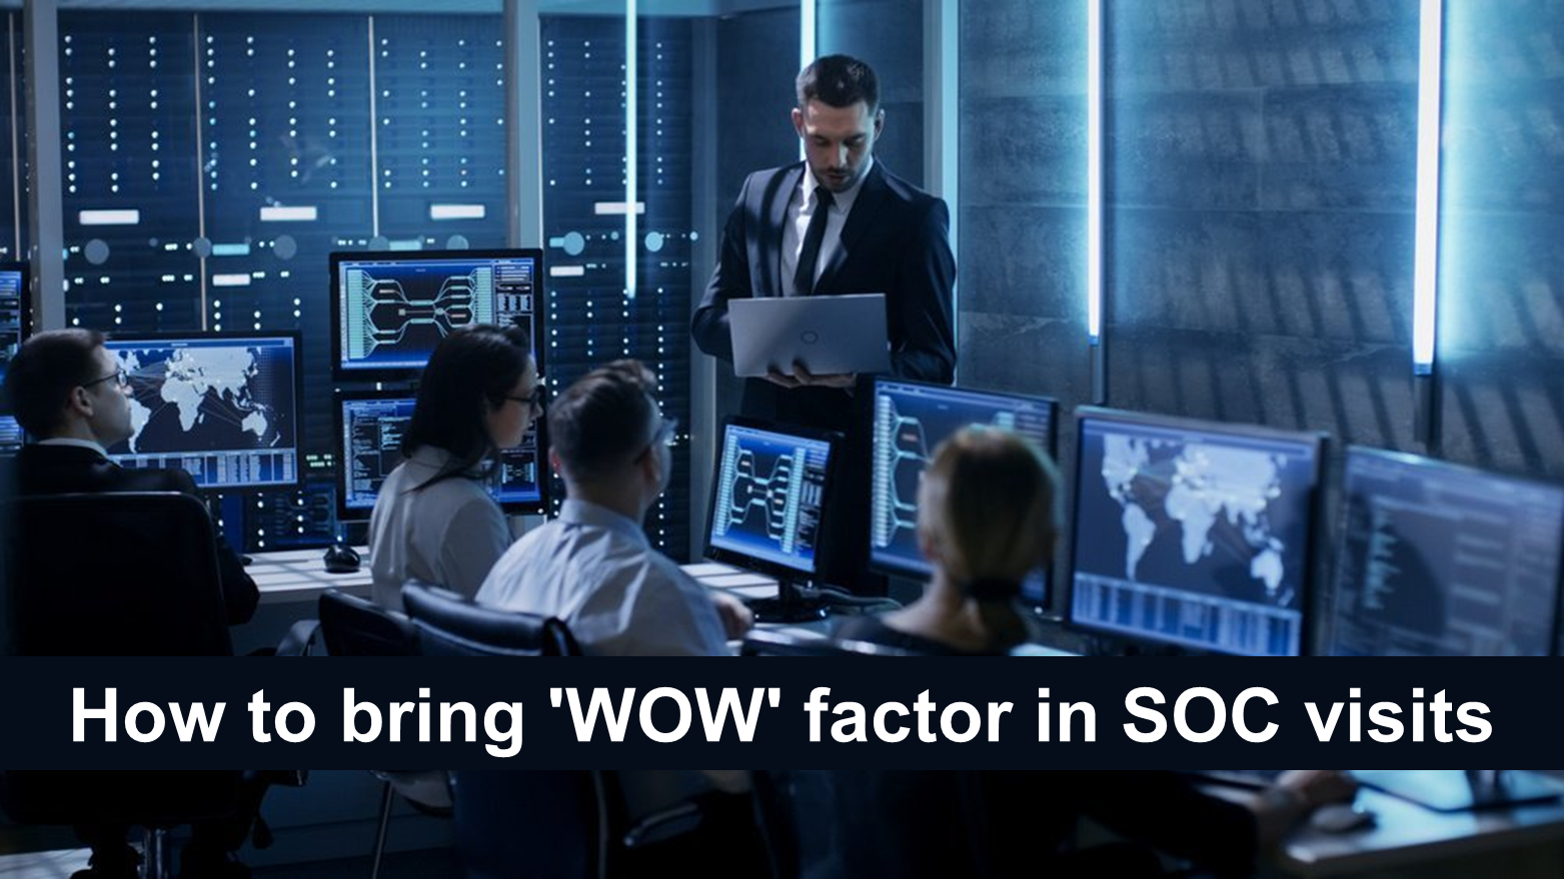 How to bring 'WOW' factor in SOC visits